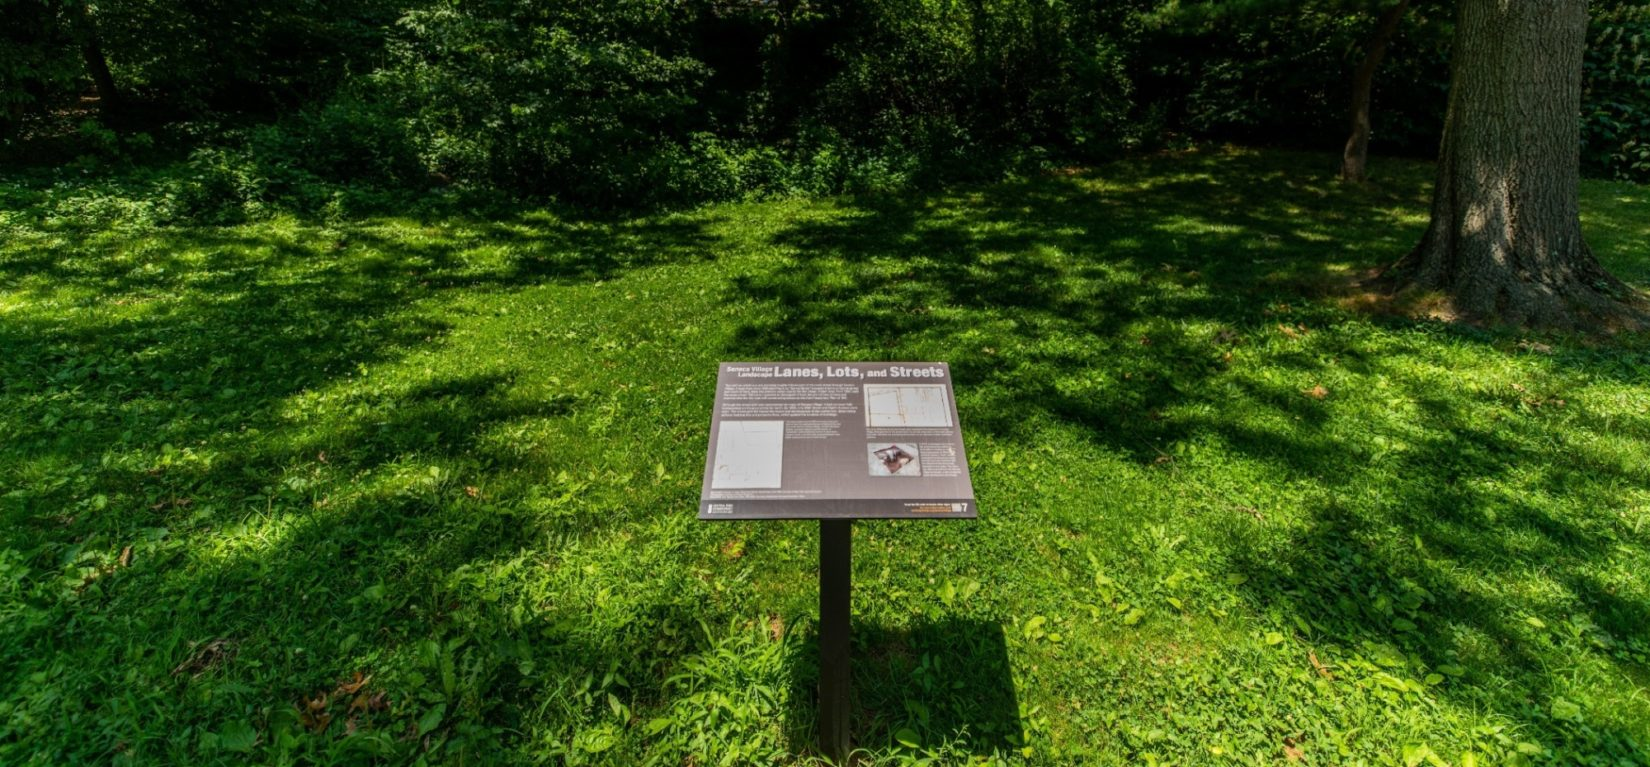 An example of the interpretive signage stands in the landscape of Seneca Village